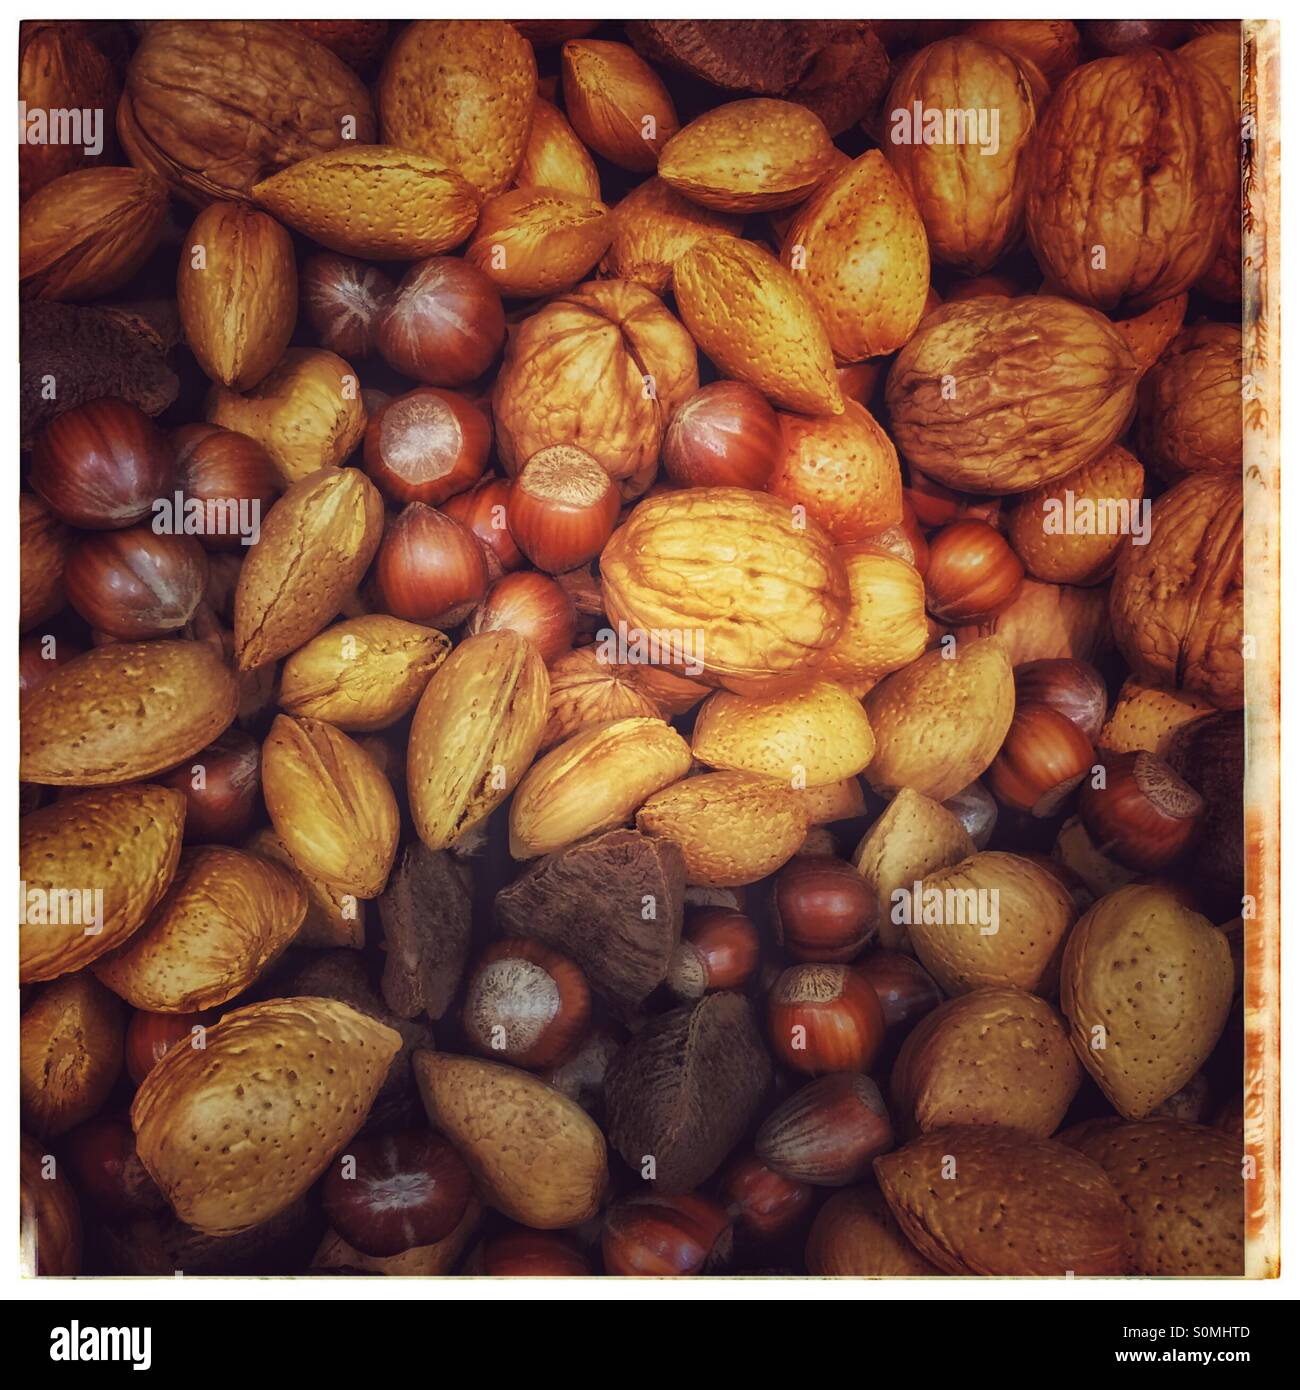 Mixed festive nuts - Stock Image